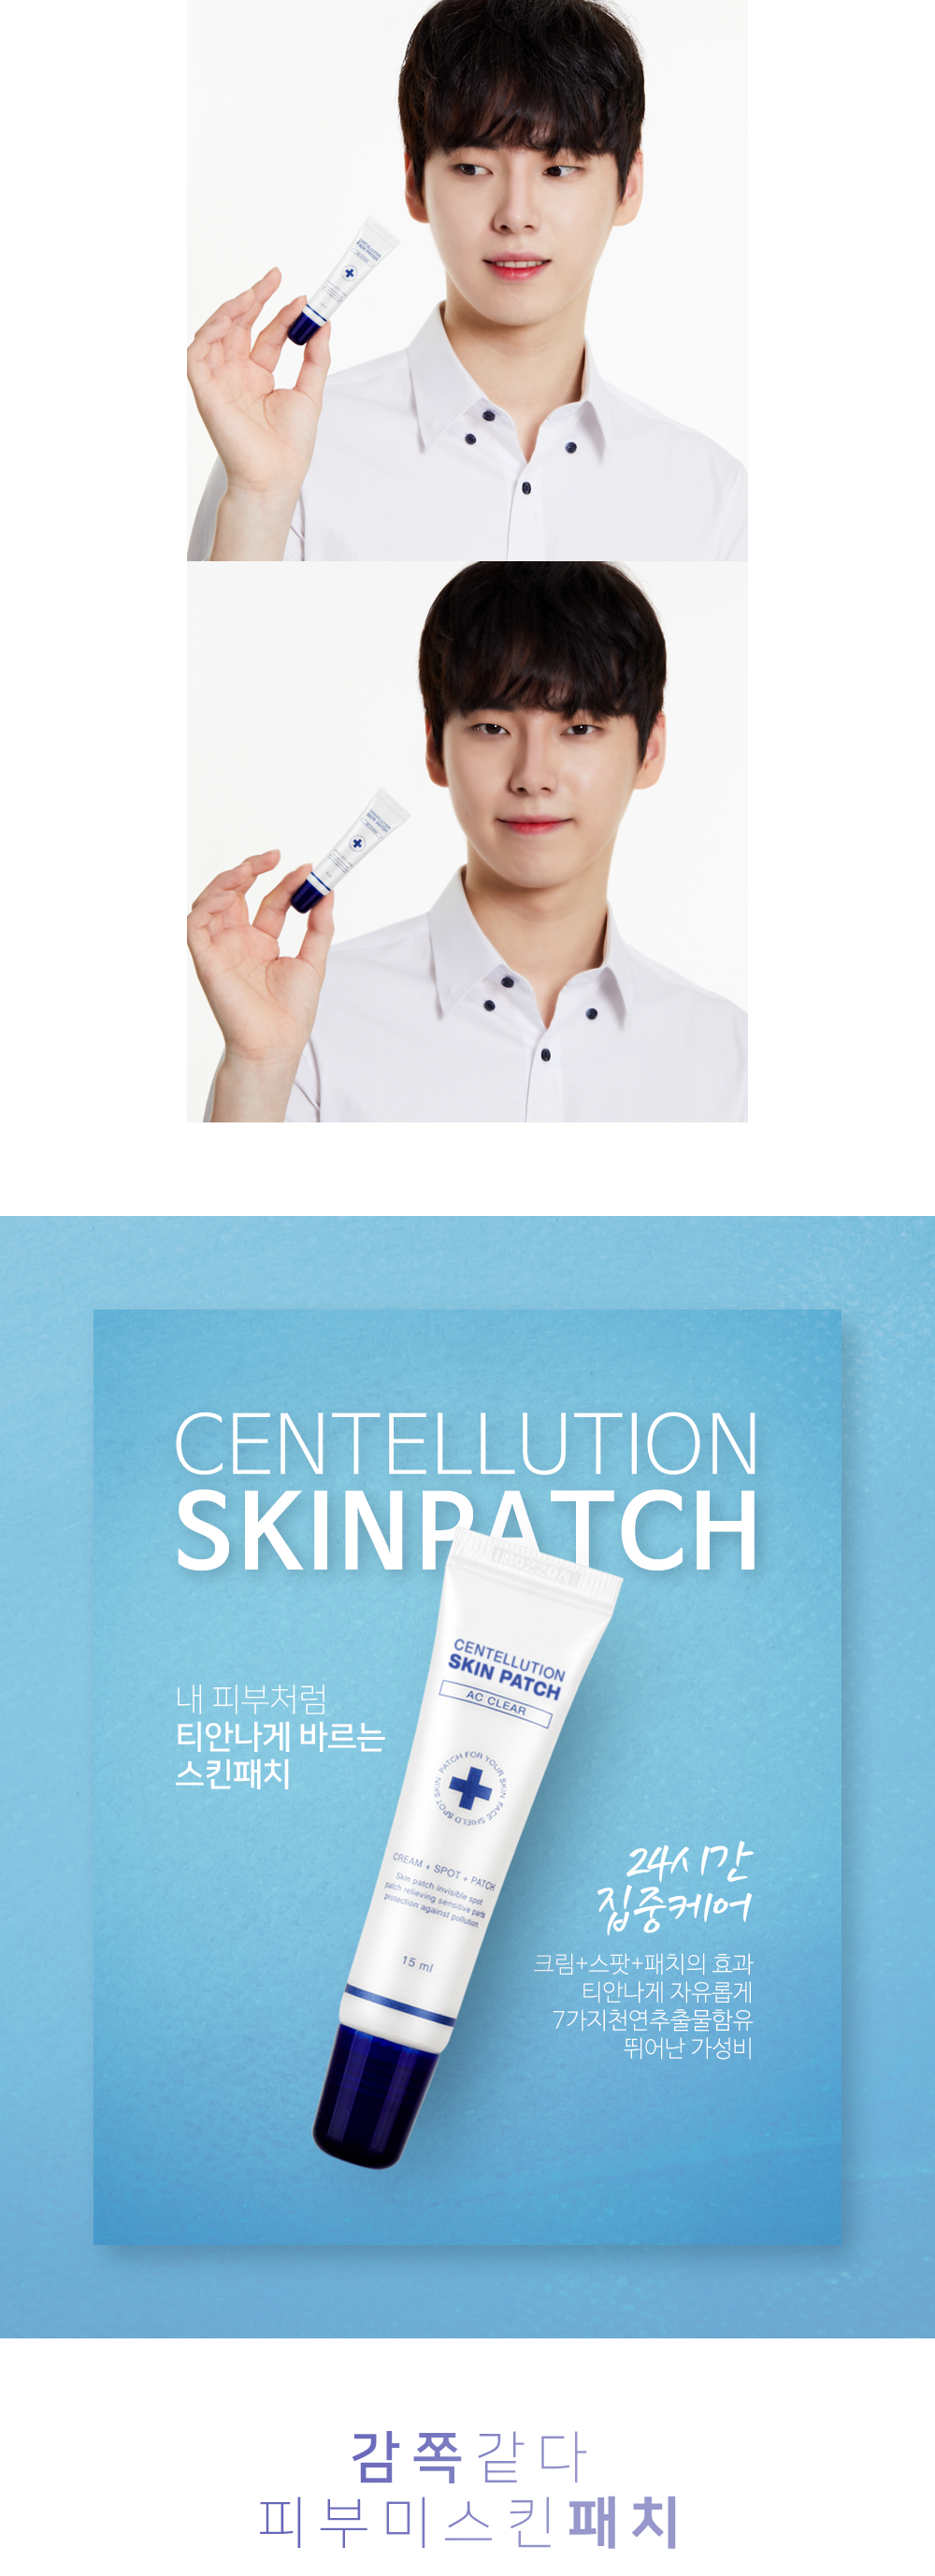 new-skinpatch-web-11.png